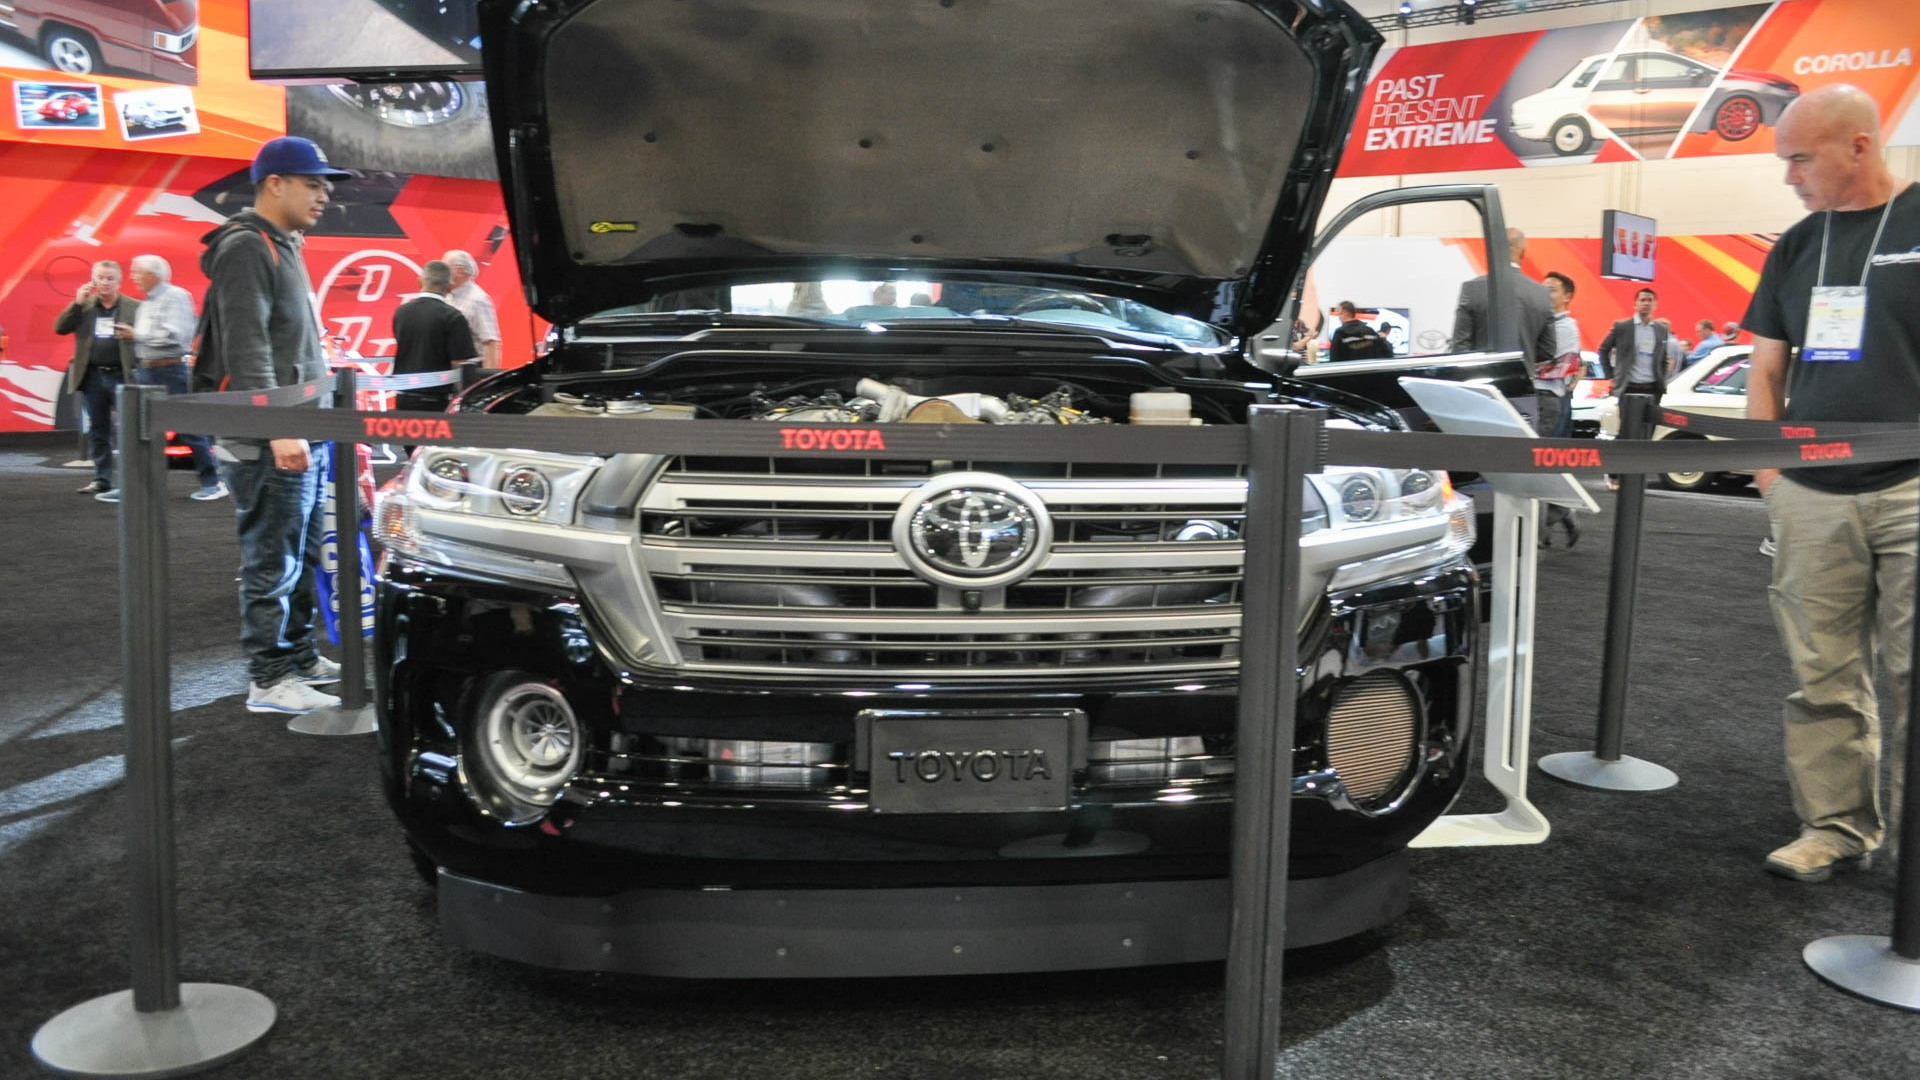 Toyota Land Speed Cruiser, 2016 SEMA